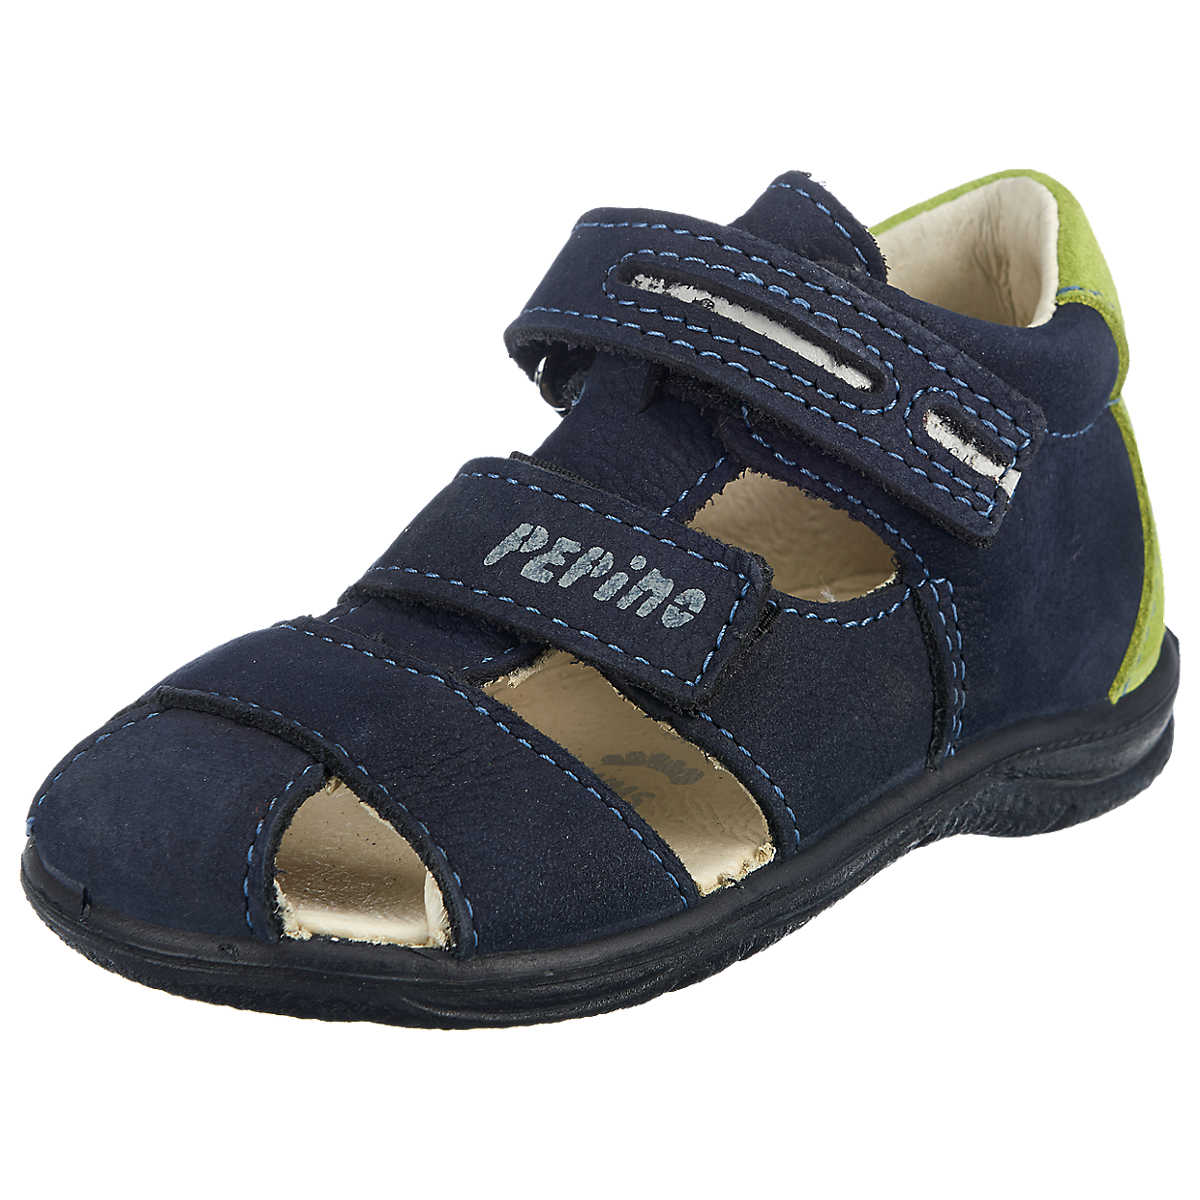 pepino by ricosta kinder sandalen kalli weite m blau schuhkontinent. Black Bedroom Furniture Sets. Home Design Ideas